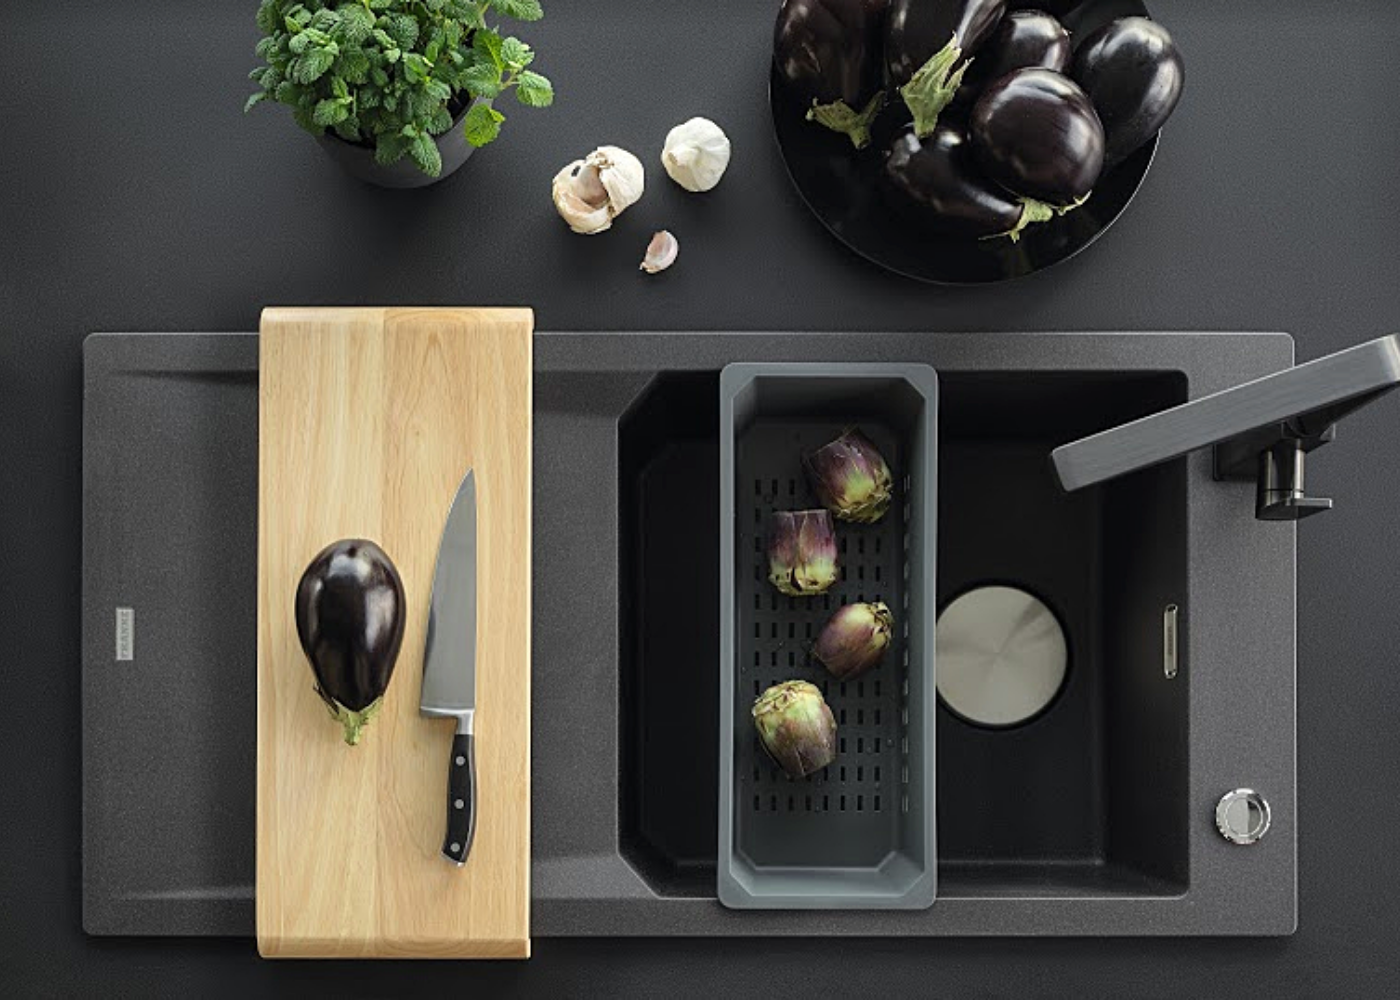 We found a germ-proof kitchen sink that's gorgeous too!